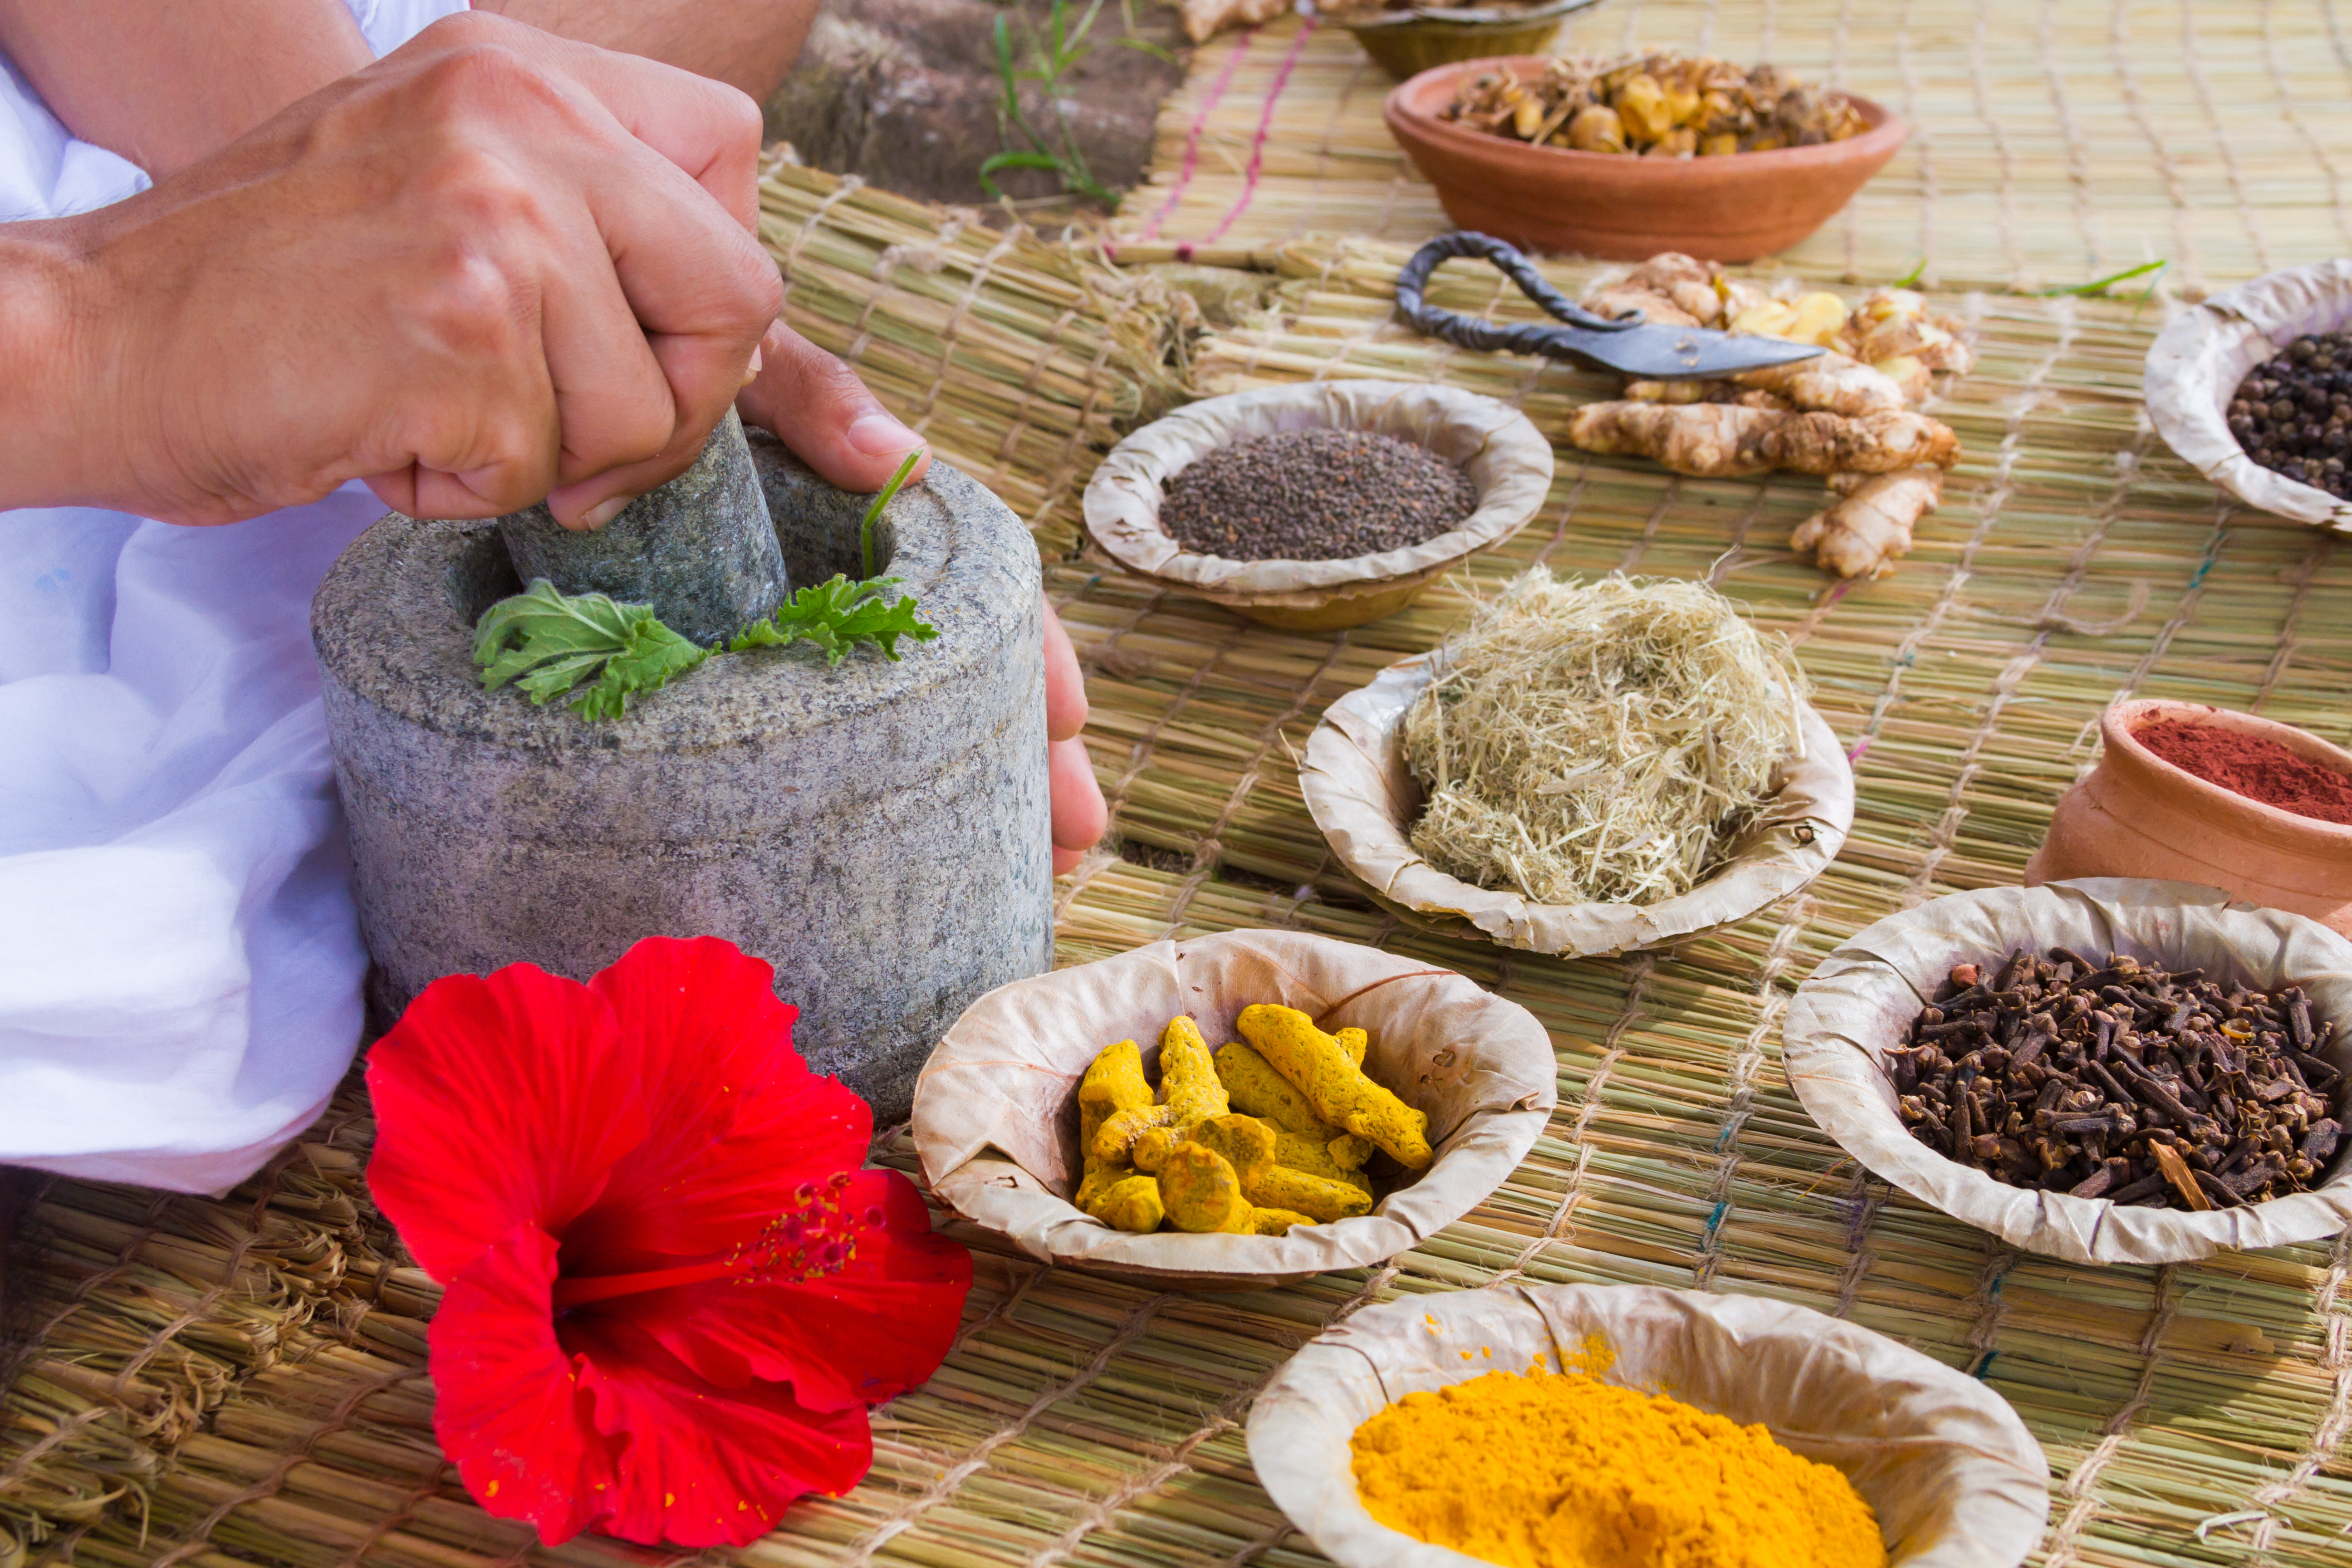 4 Ayurvedic miracles your kitchen offers